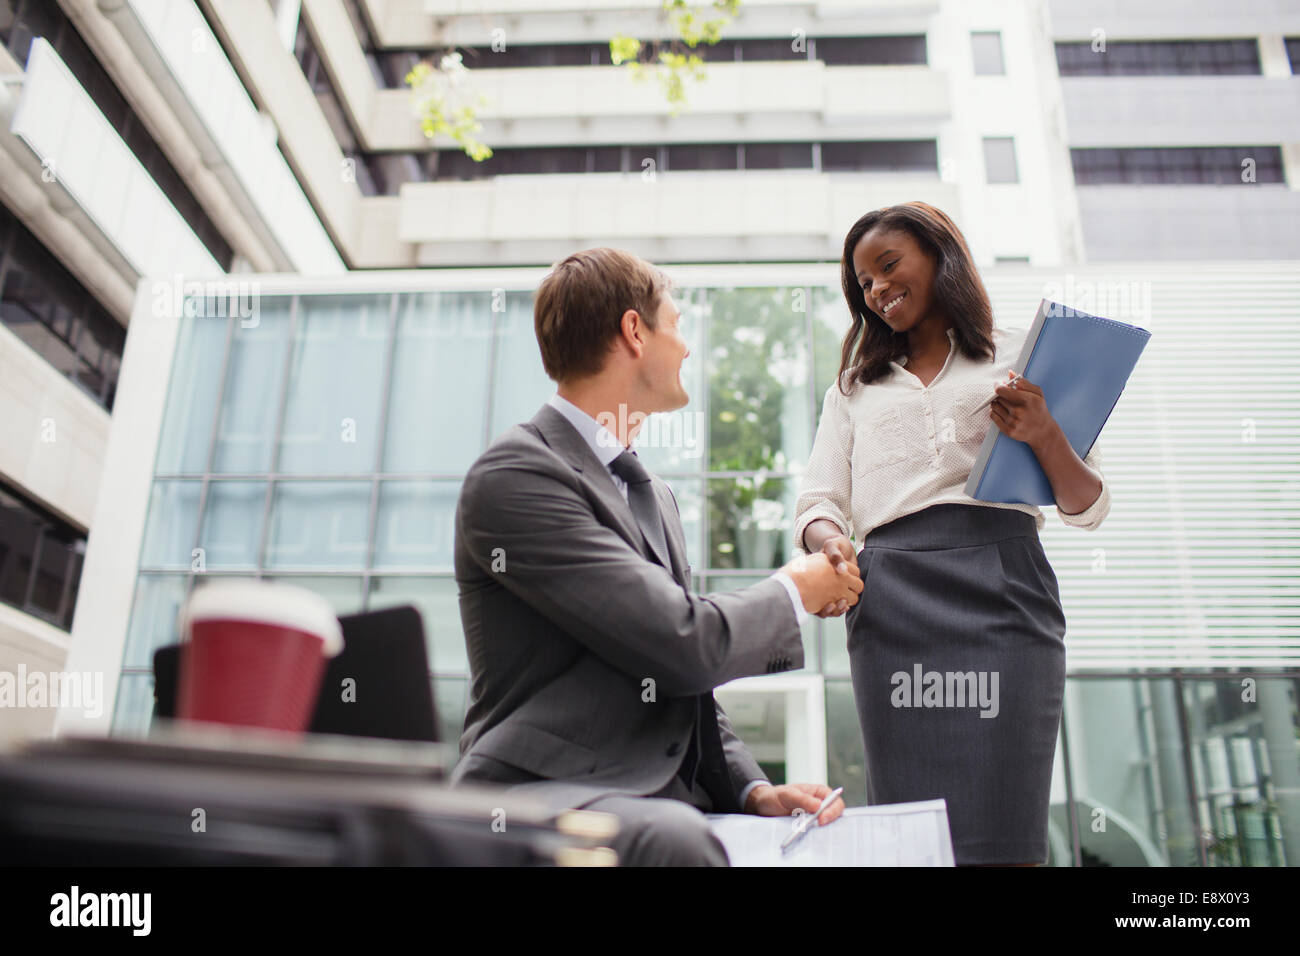 Business people talking outside of office building - Stock Image